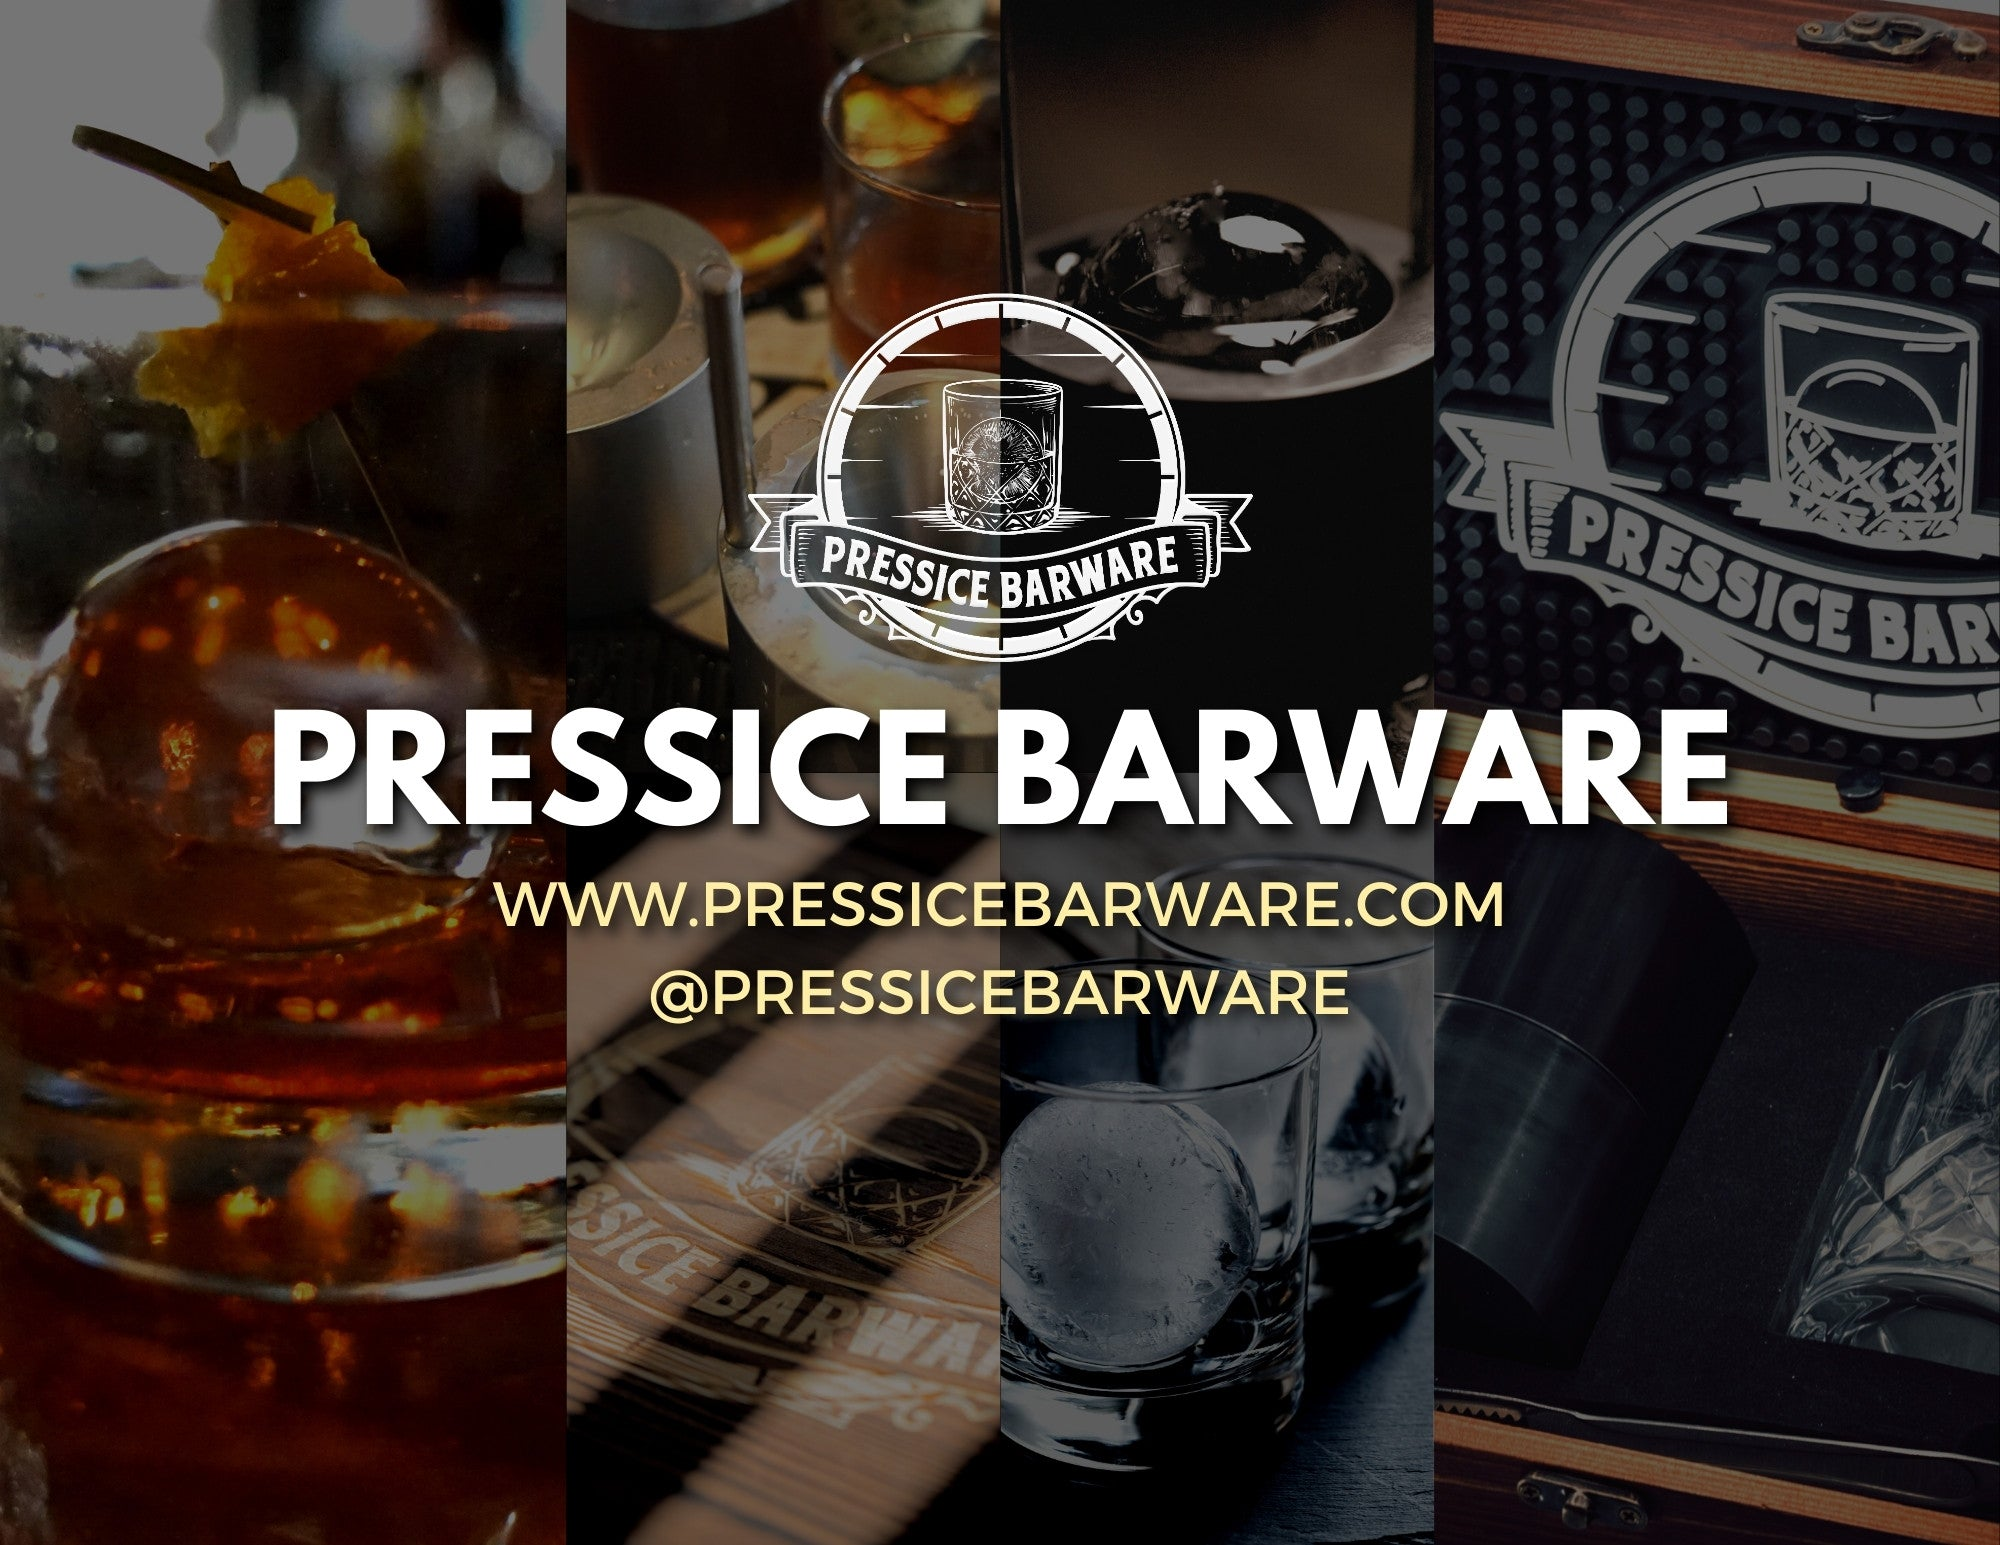 Contact Pressice Ice Ball Press Manufacturer and Distributor of quality ice presses made inthe USA social media handles